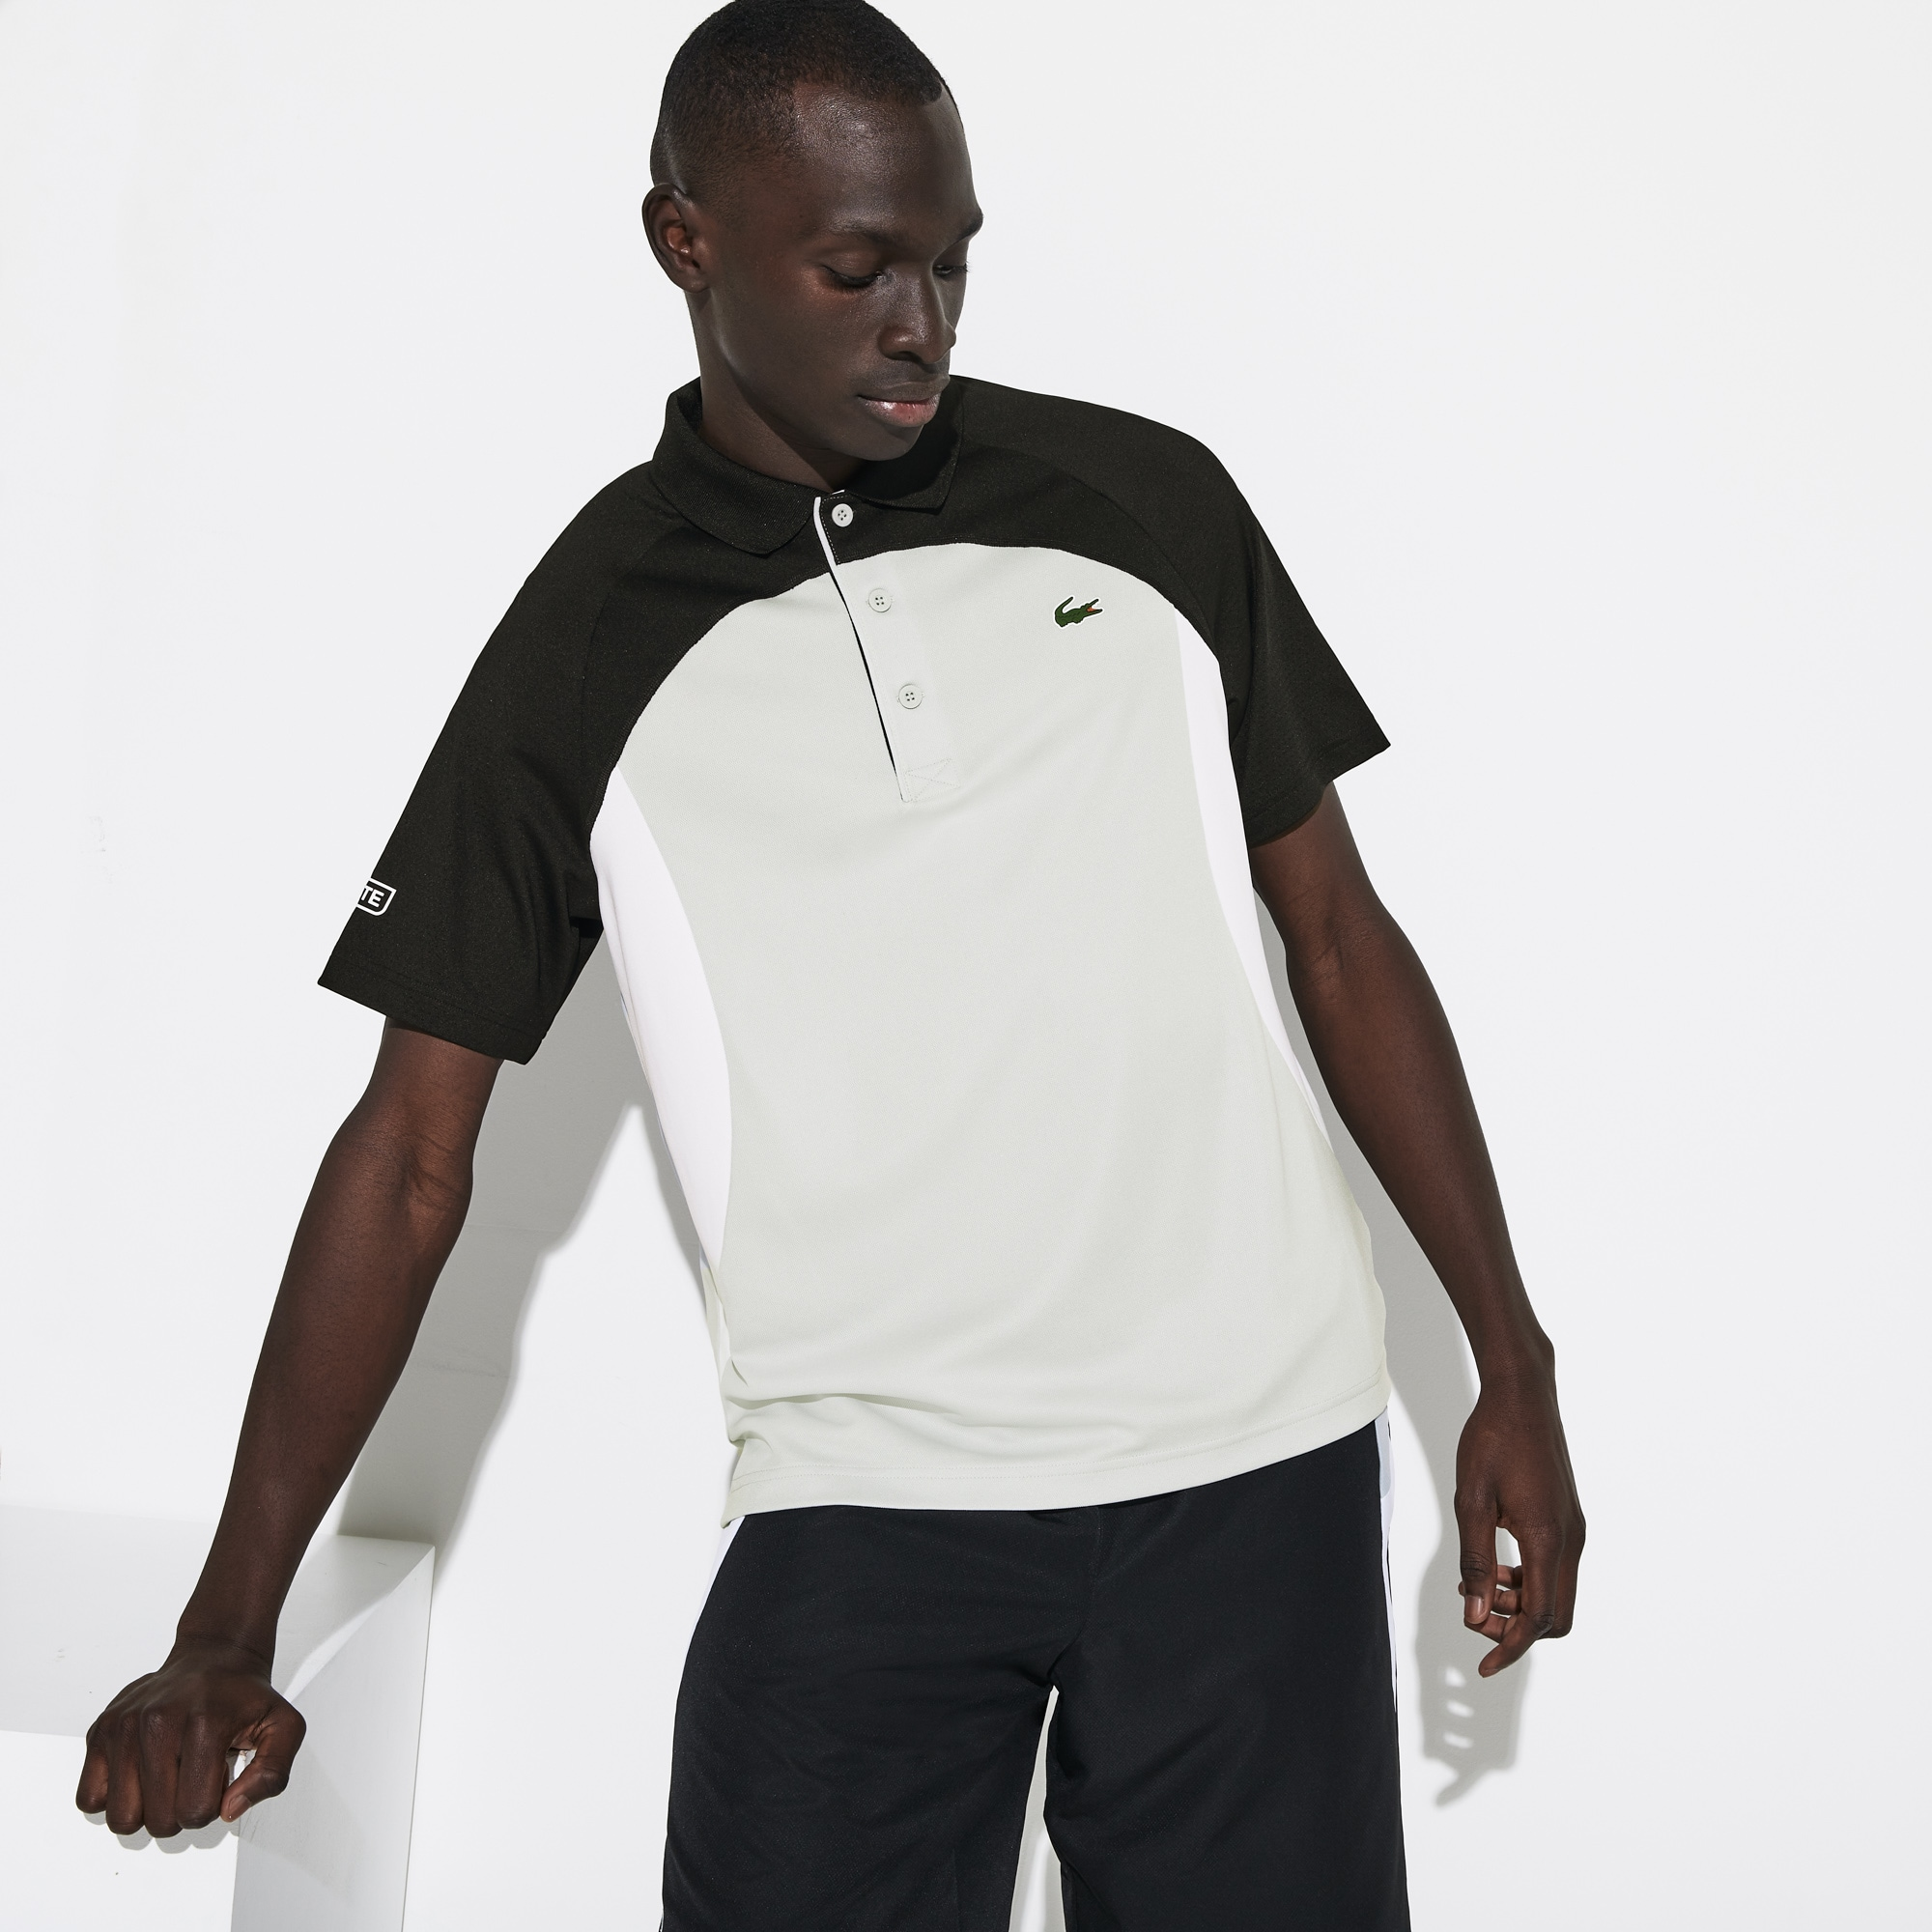 라코스테 Lacoste Mens SPORT Colorblock Breathable Pique Tennis Polo Shirt,Black / Light Grey / White - RWR